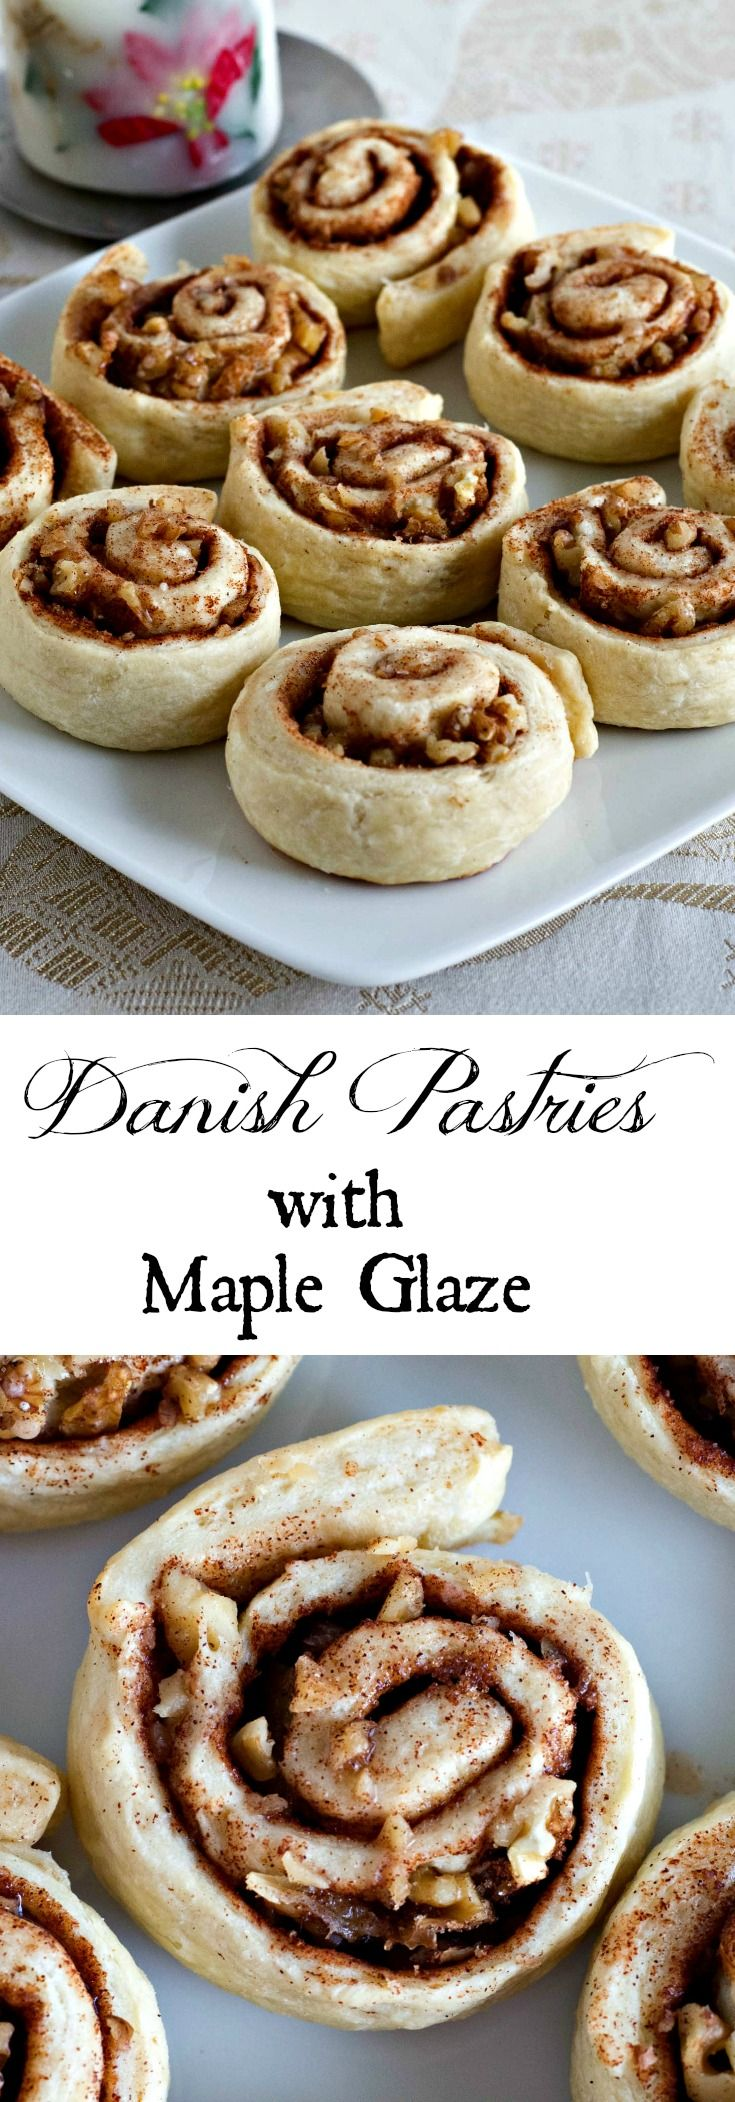 Danish Pastries with Maple Glaze - a traditional family recipe with pastry dough rolled up with walnuts and cinnamon and drizzled with Maple glaze.